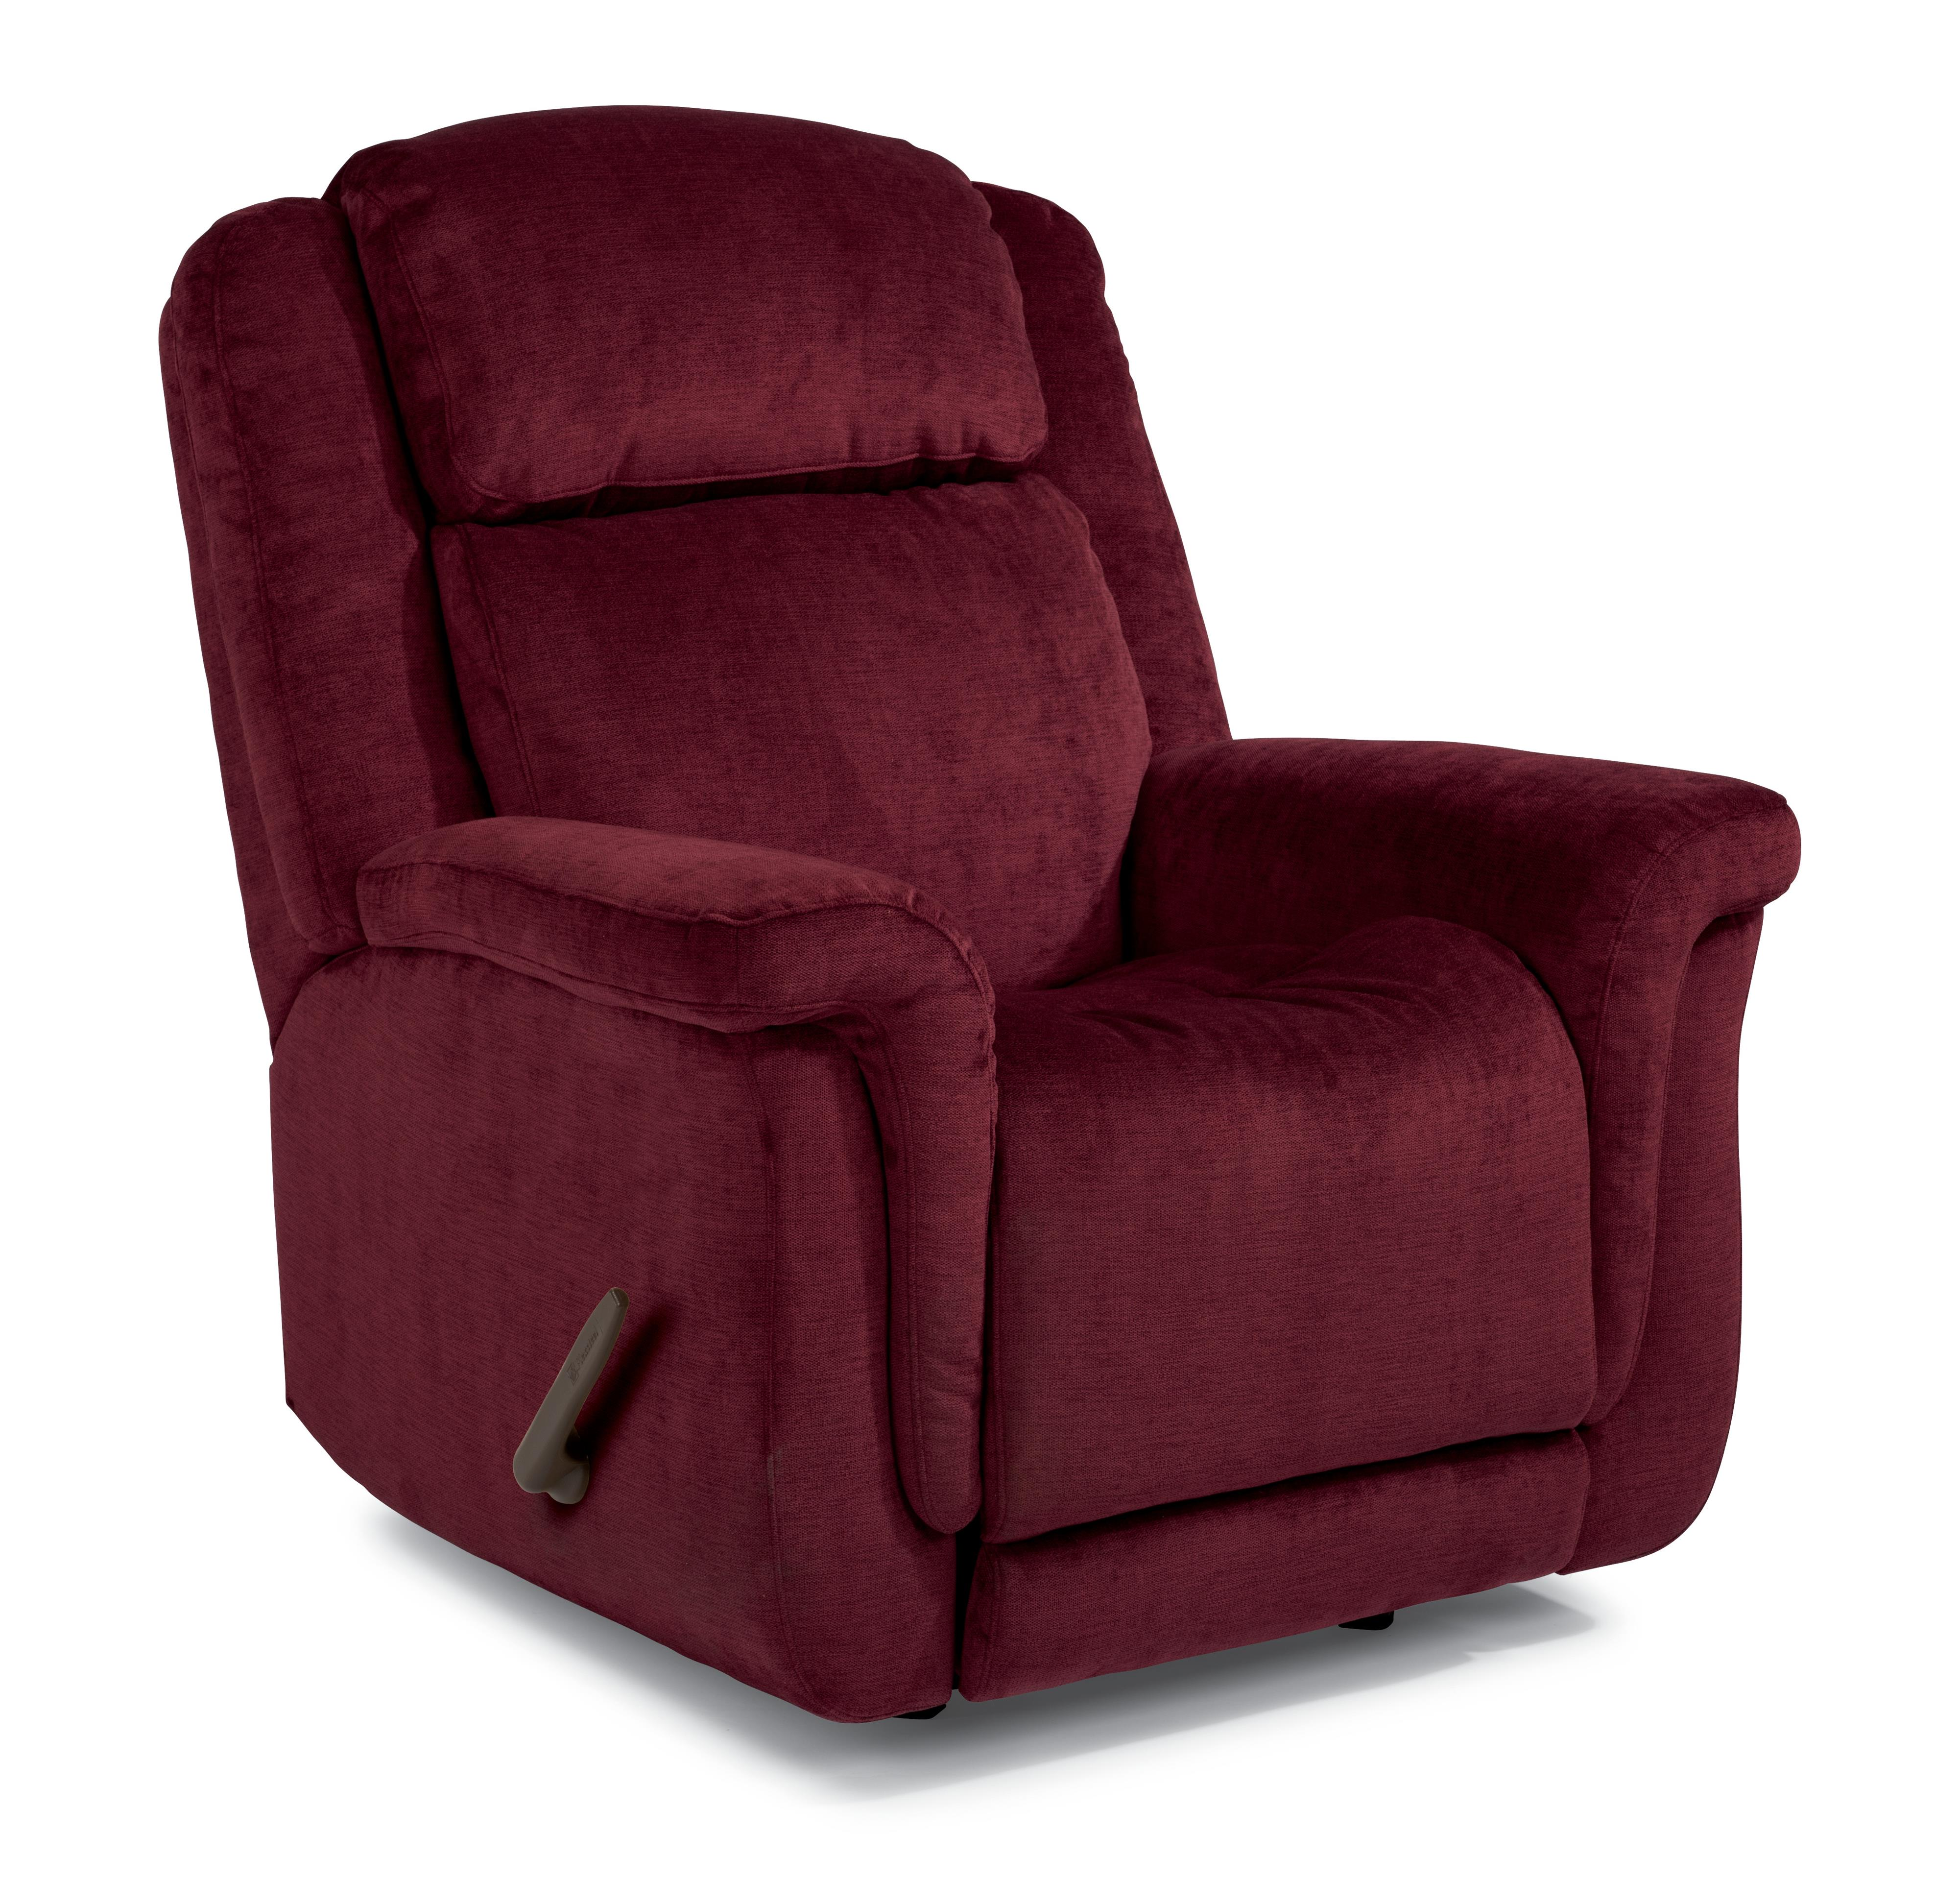 Flexsteel Accents Wall Recliner - Item Number: 2814-50-723-60